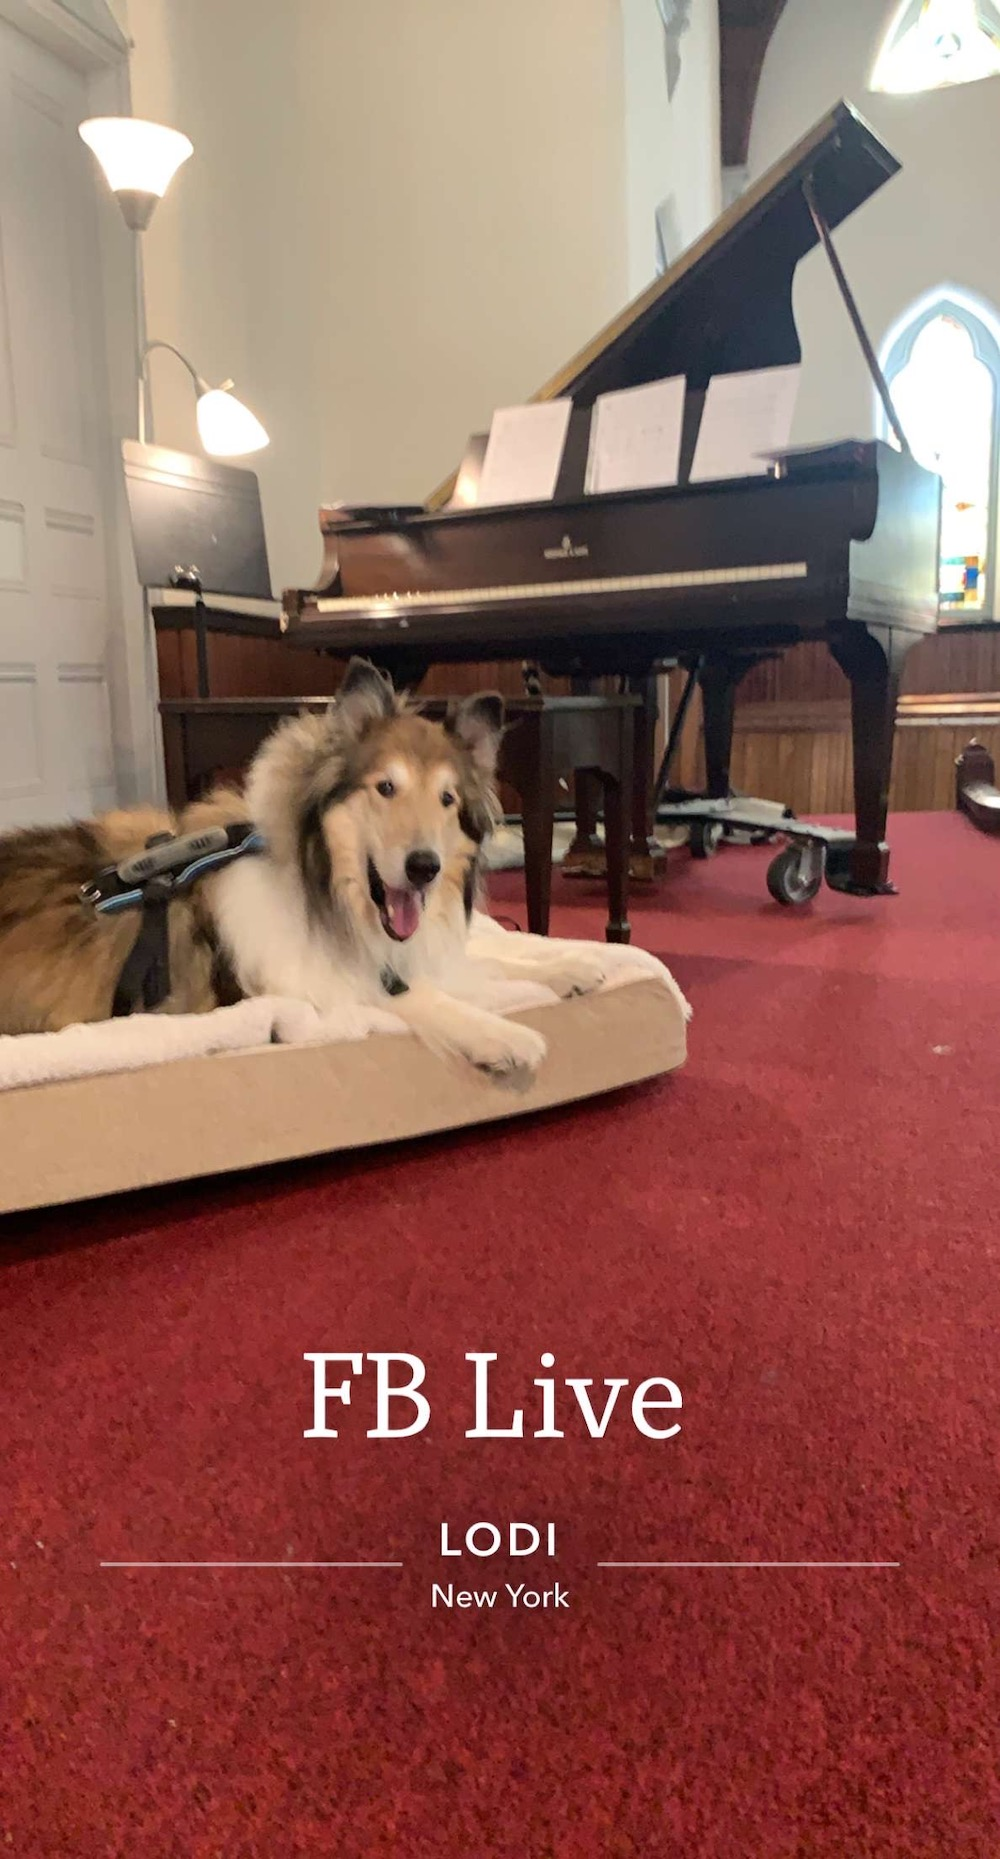 An ad for a Facebook Live event with a collie seated on a dog bed in a church with a piano behind him